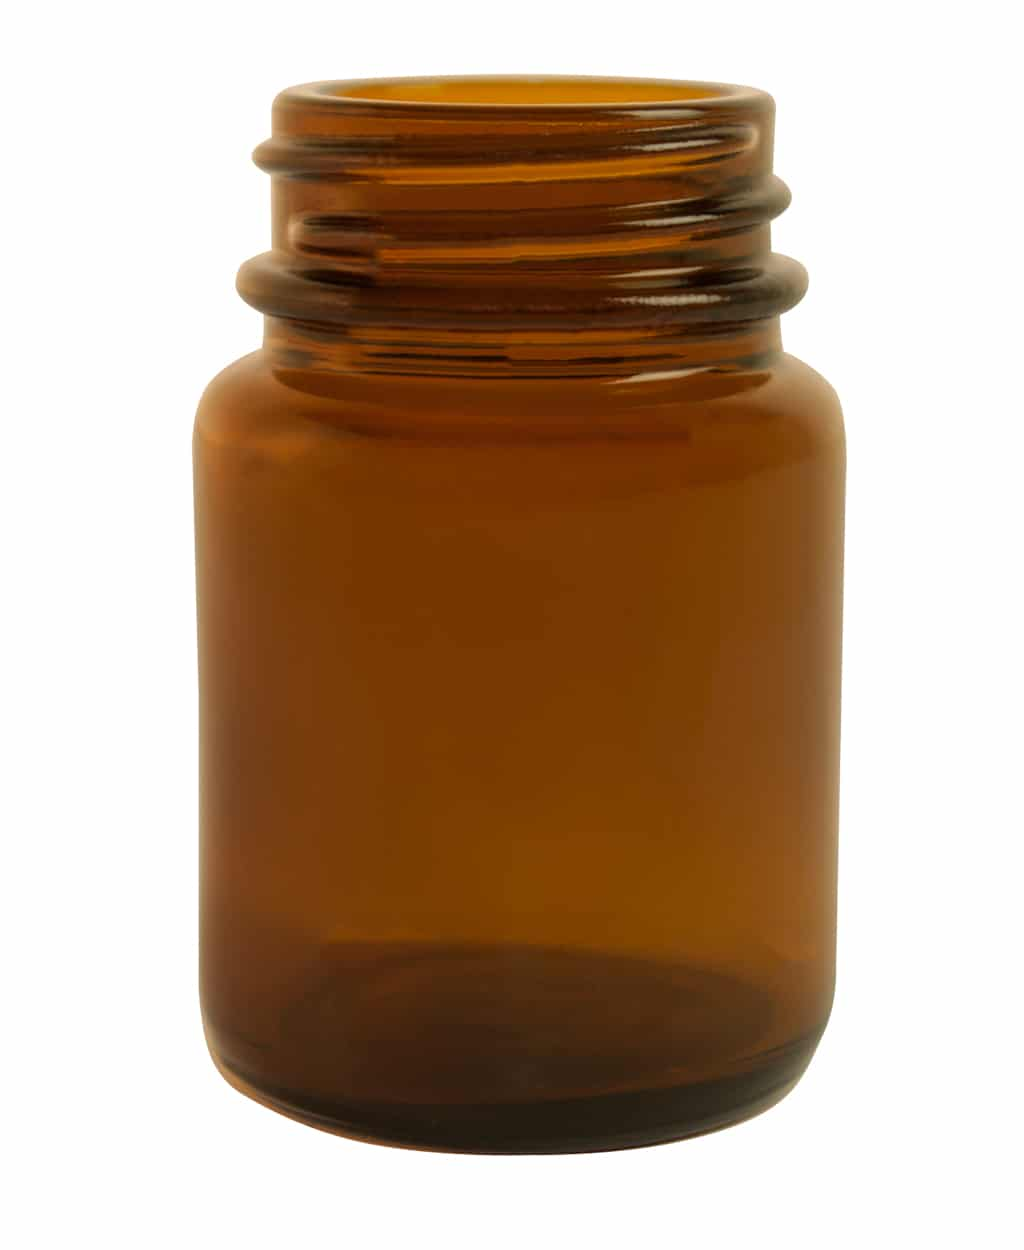 Powder jar 030ml 33/R3 glass amber